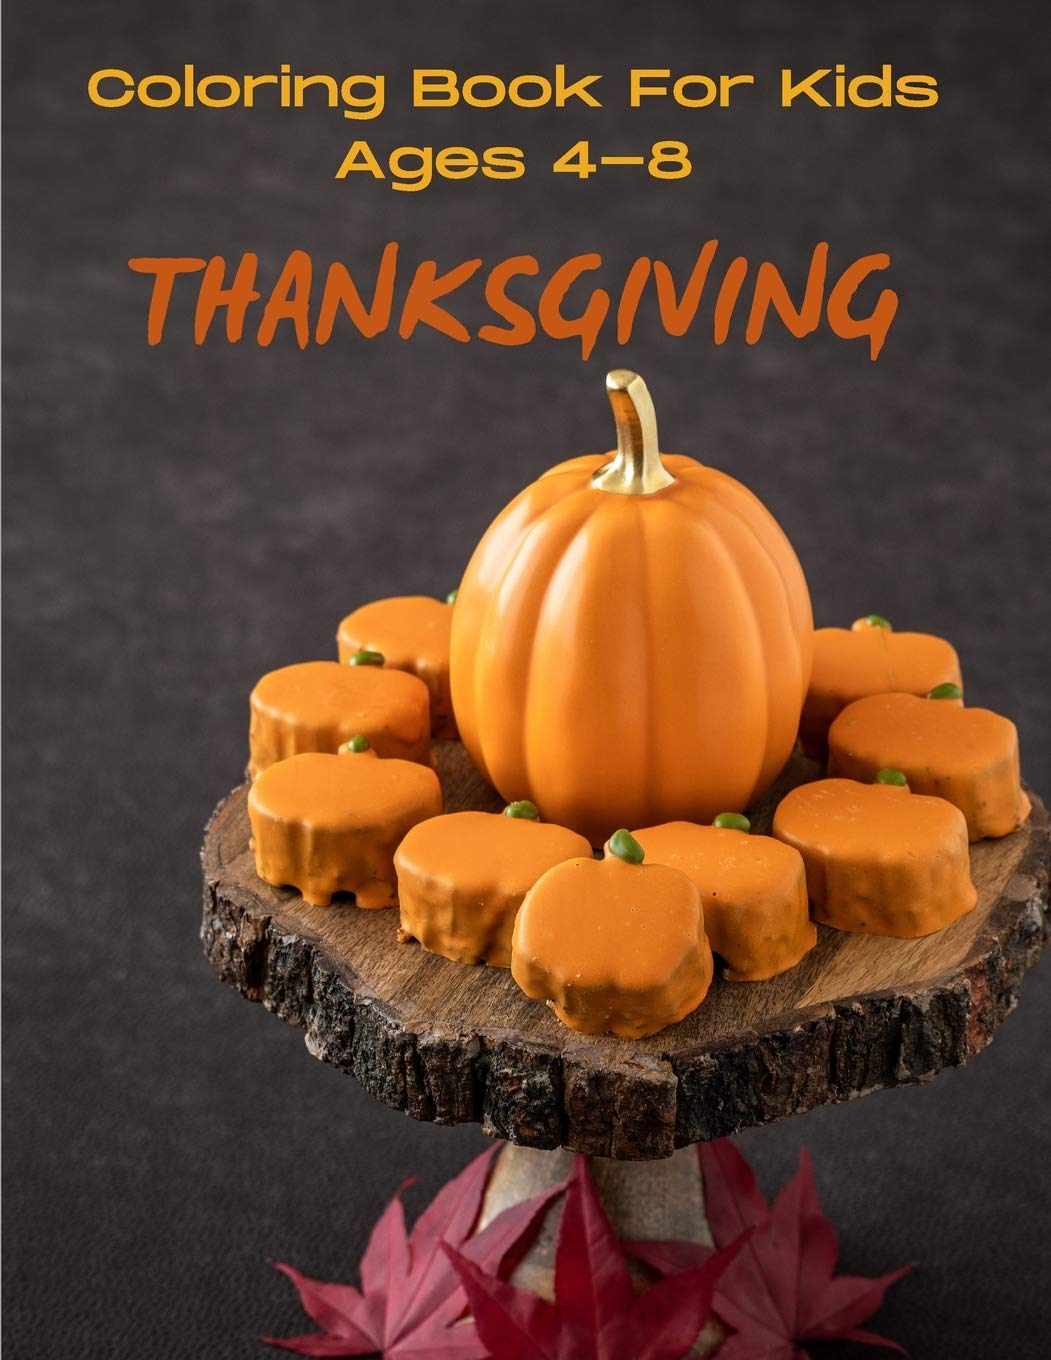 Thanksgiving Coloring Book For Kids Ages 4 8 Coloring Pages Word Puzzles Sudoku Tic Tac Toe And More Toddlers Thanksgiving Books Coloring As Emy Edition 9798550643457 Amazon Com Books